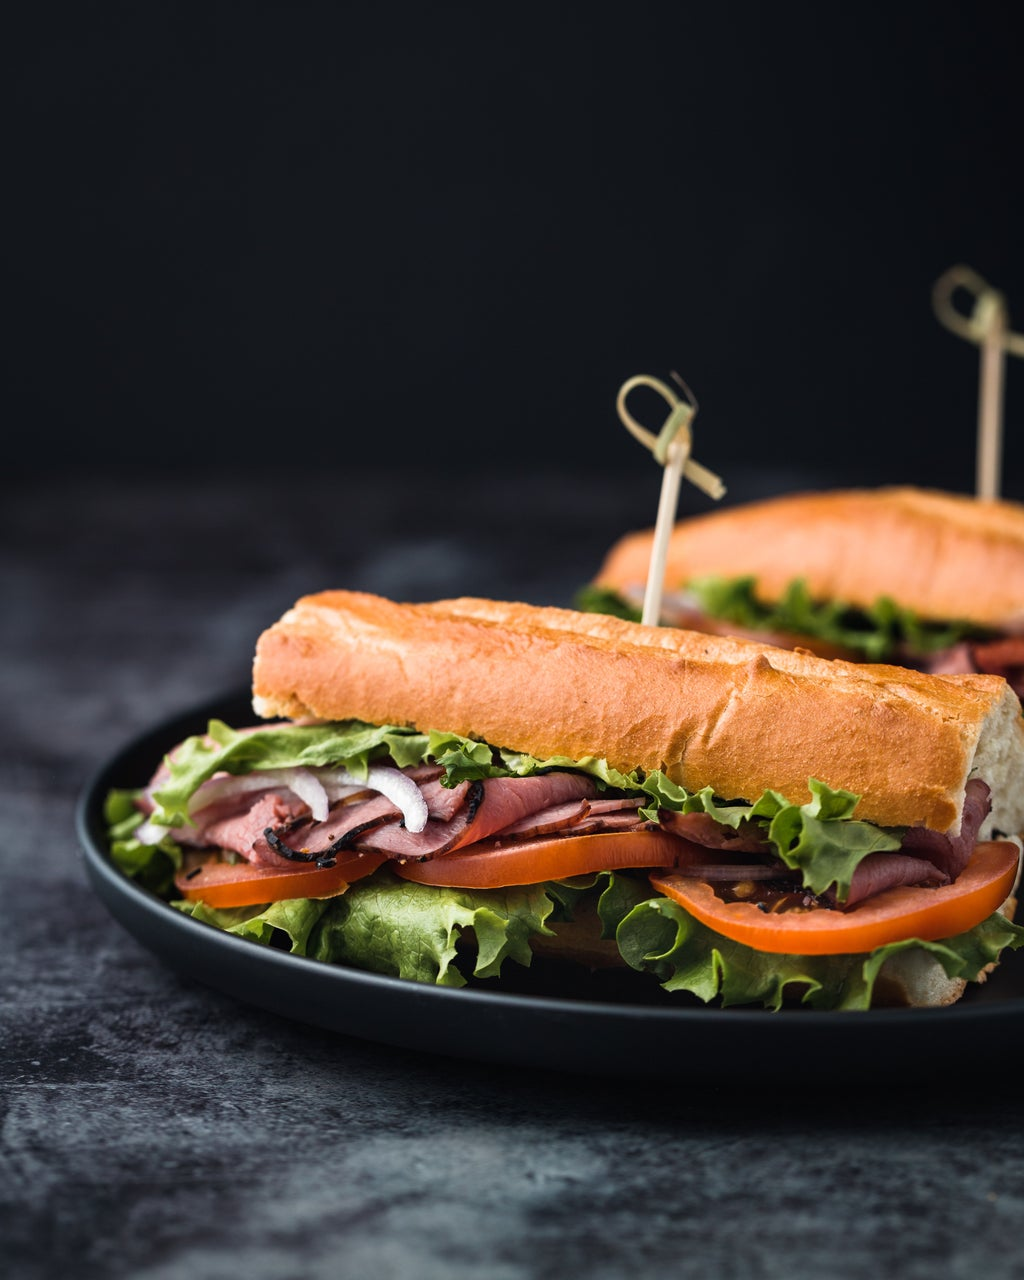 vegetabes and sliced deli meat on roll